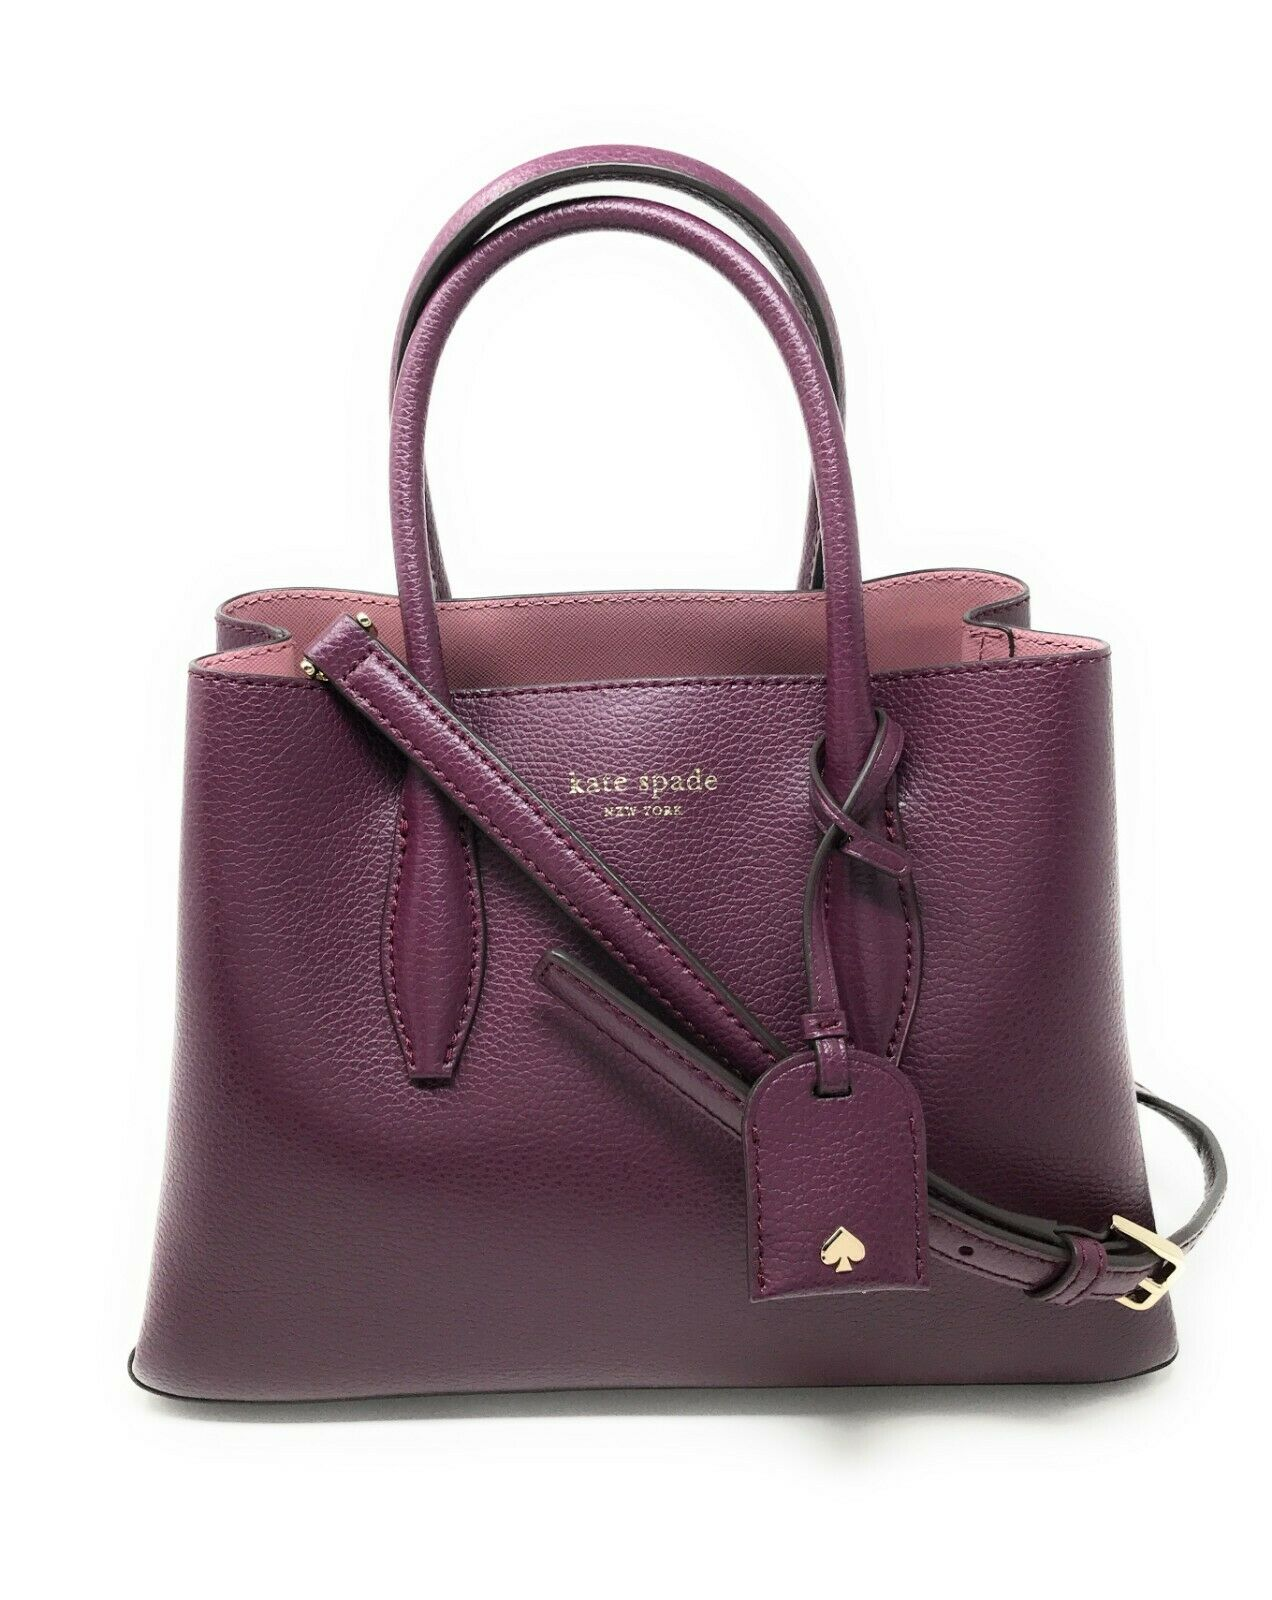 Kate Spade Eva Small Satchel Leather Crossbody Bag WKRU5697 WKRU5867